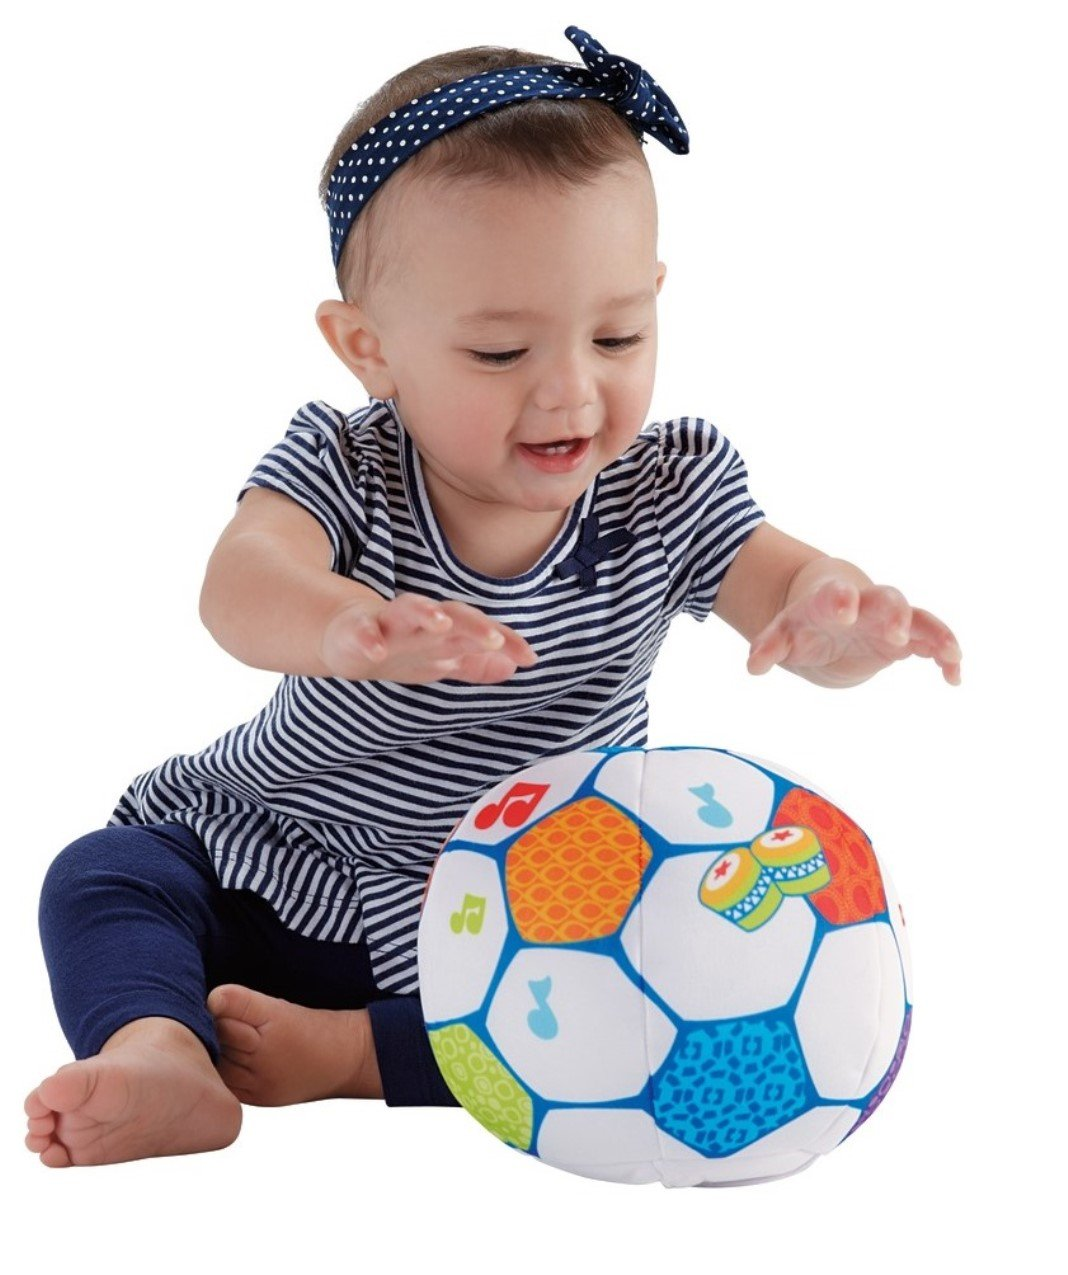 Fisher-Price First Steps Move 'n Groove Soccer Ball Fisher Price CJT74